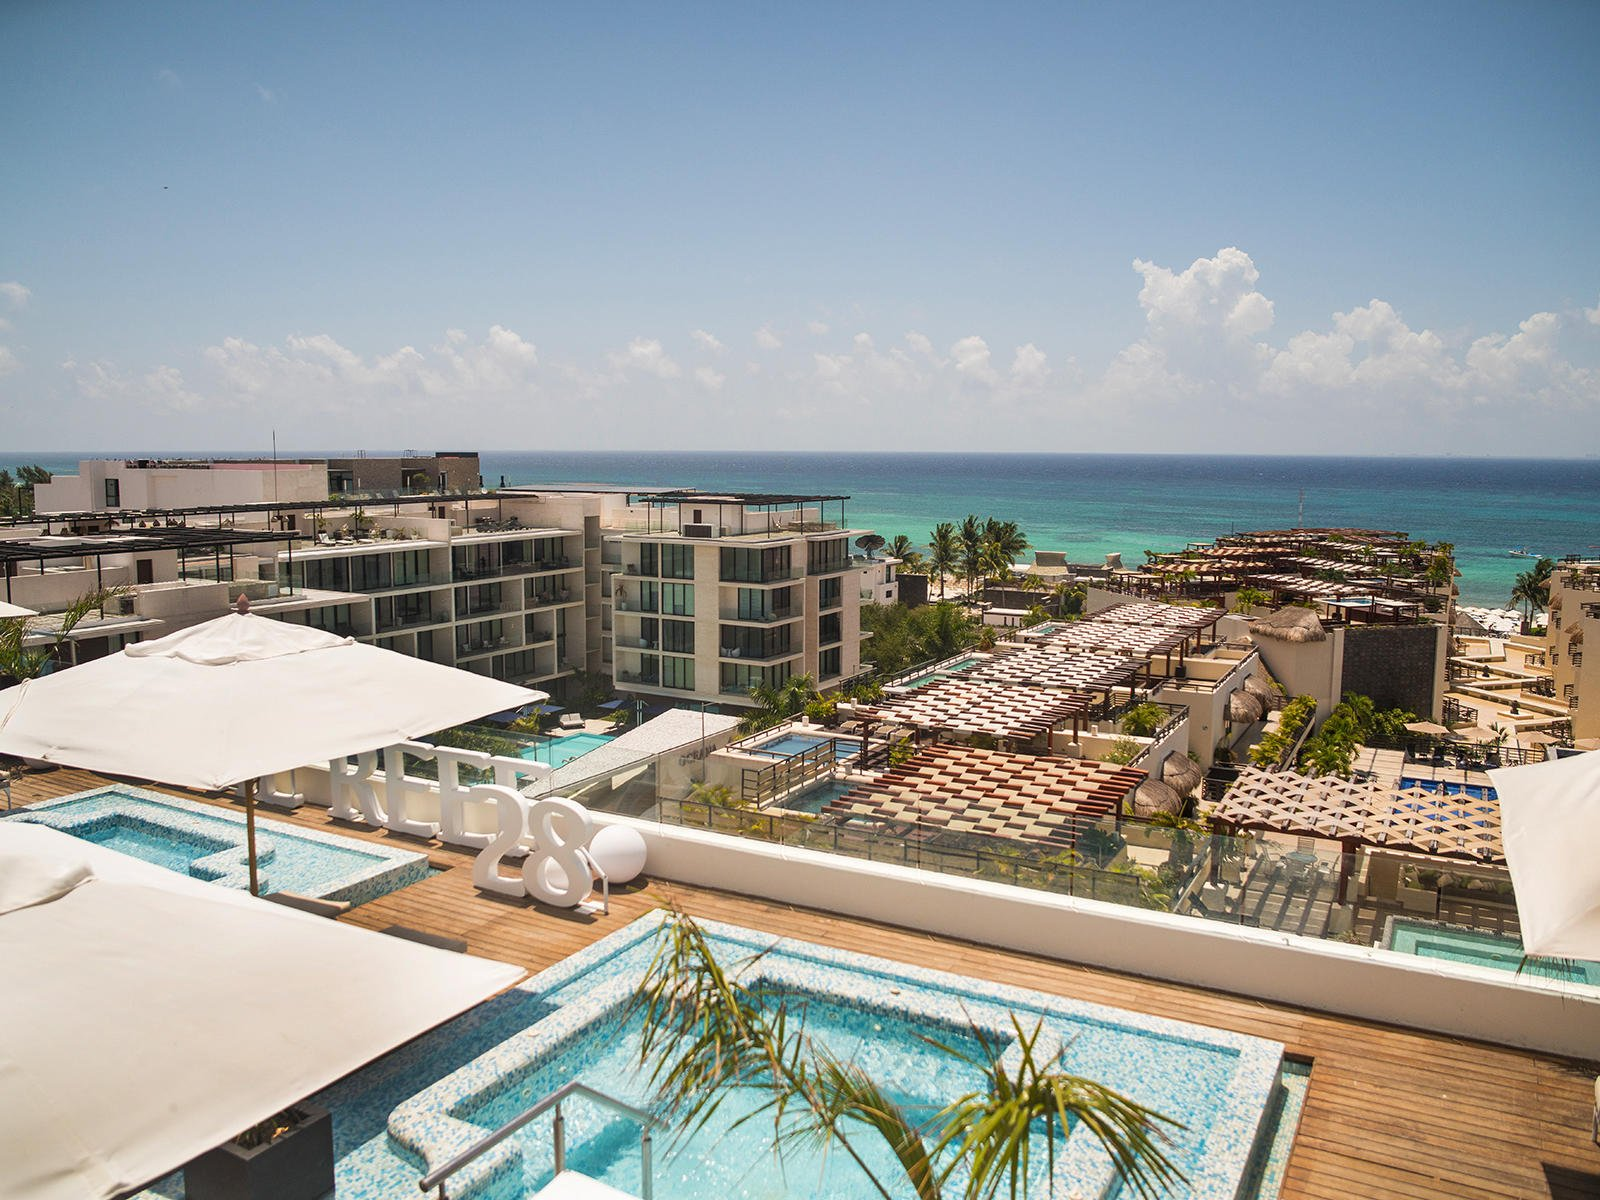 Hotel The Reef 28